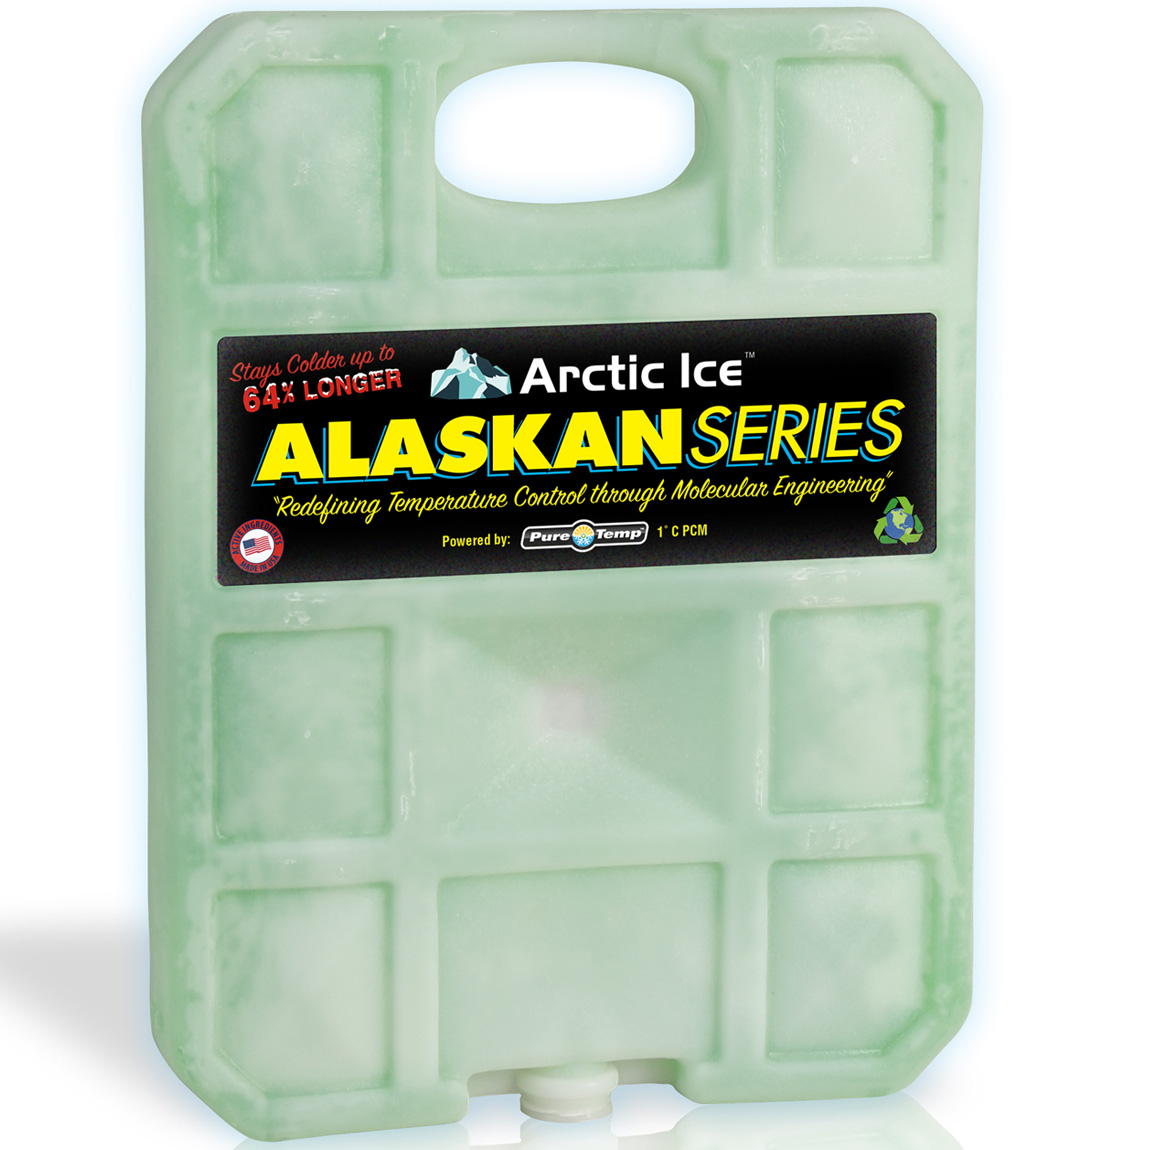 Arctic Ice 2.5 lb Alaskan Series Reusable Cooler